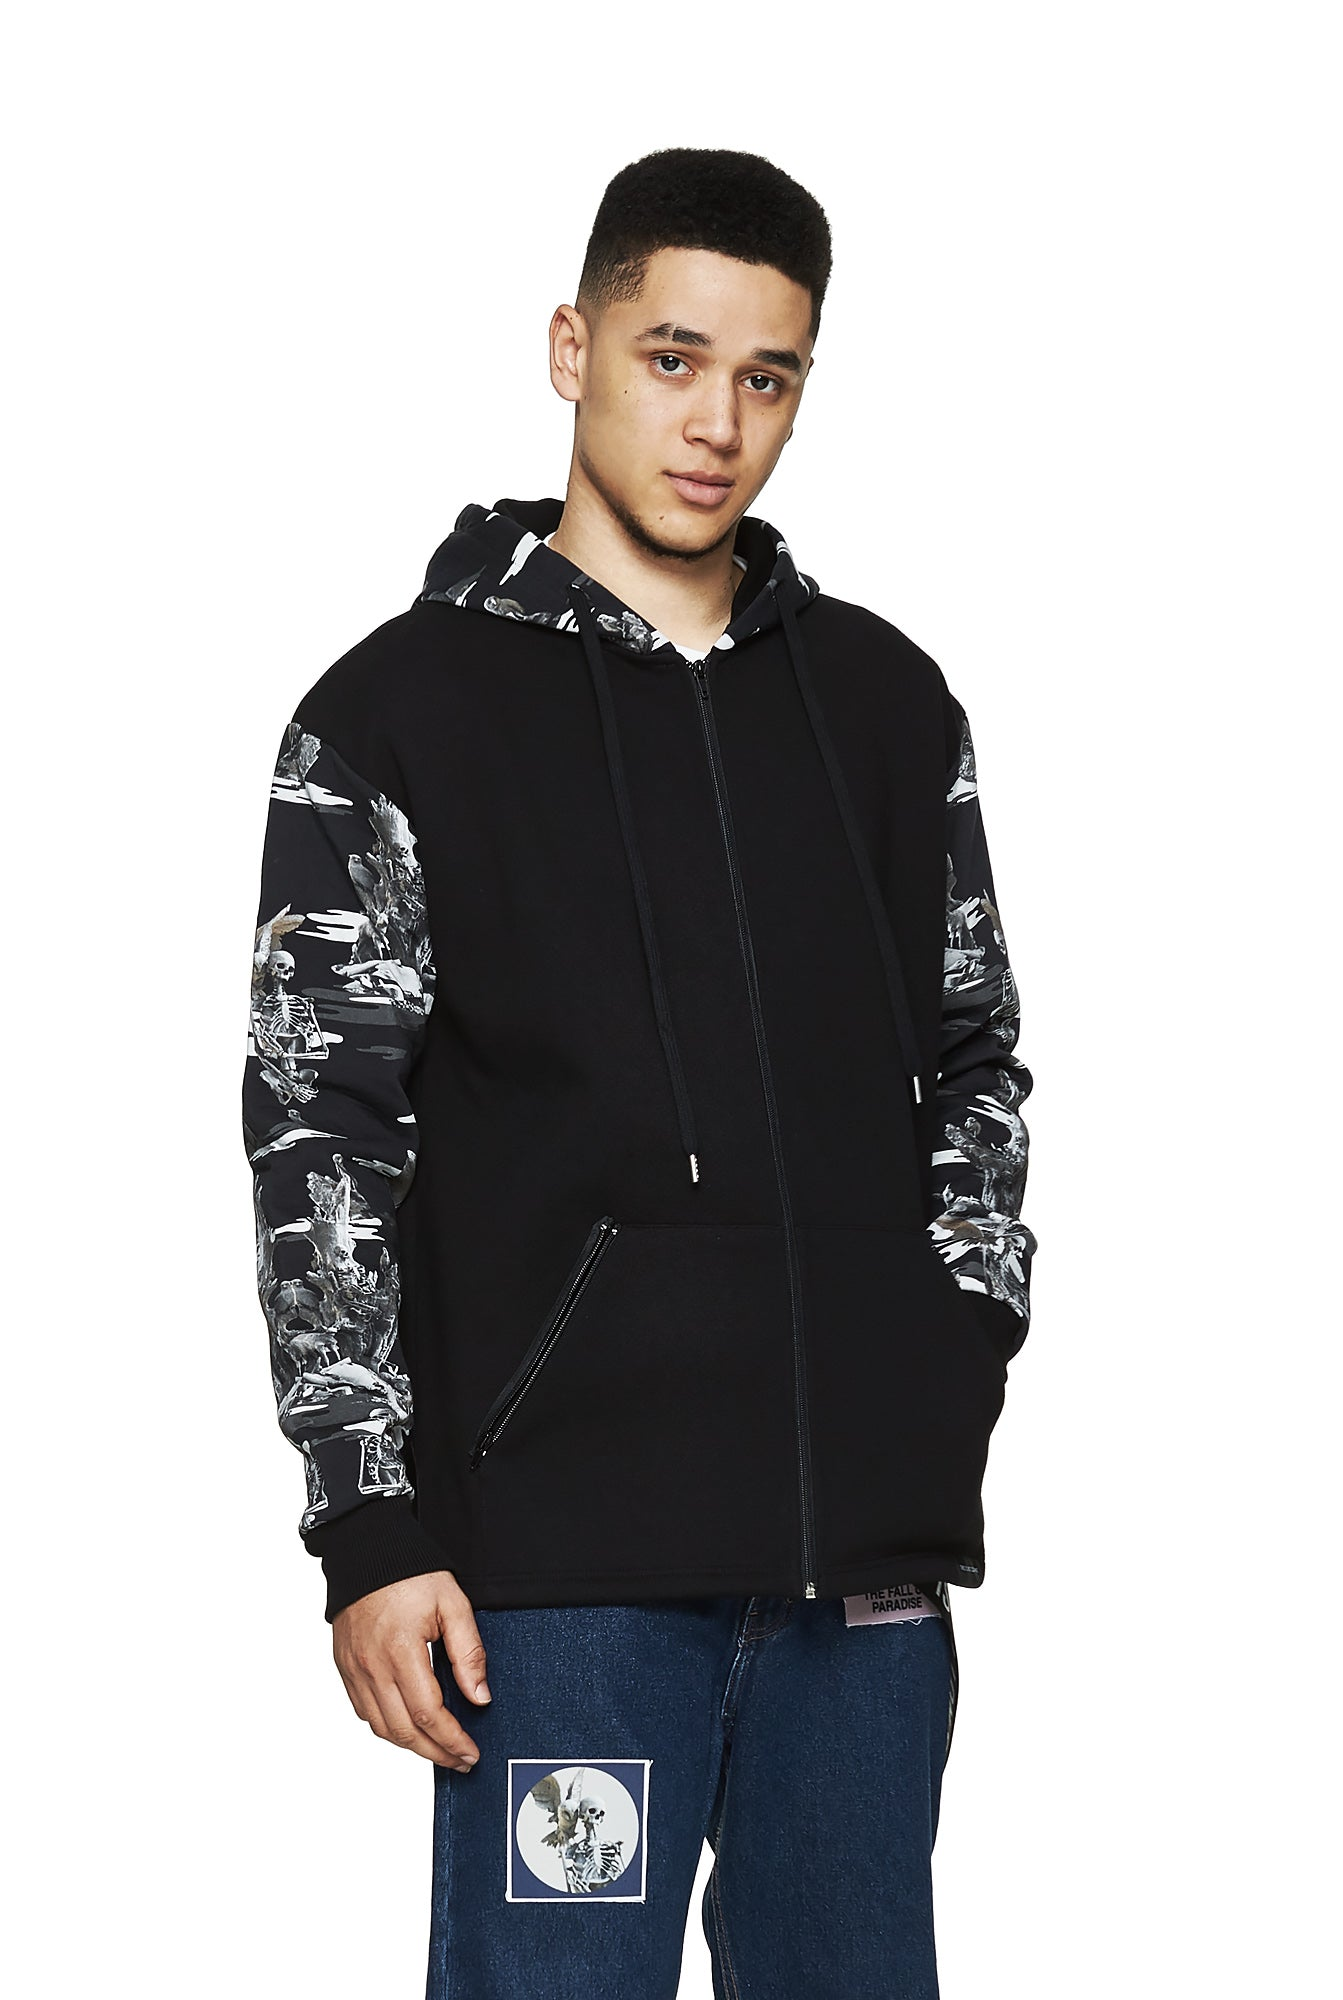 Fall of Paradise Camo Hoodie Grey - Designer Brand - This Is Not Clothing - Lookbook Photo 2